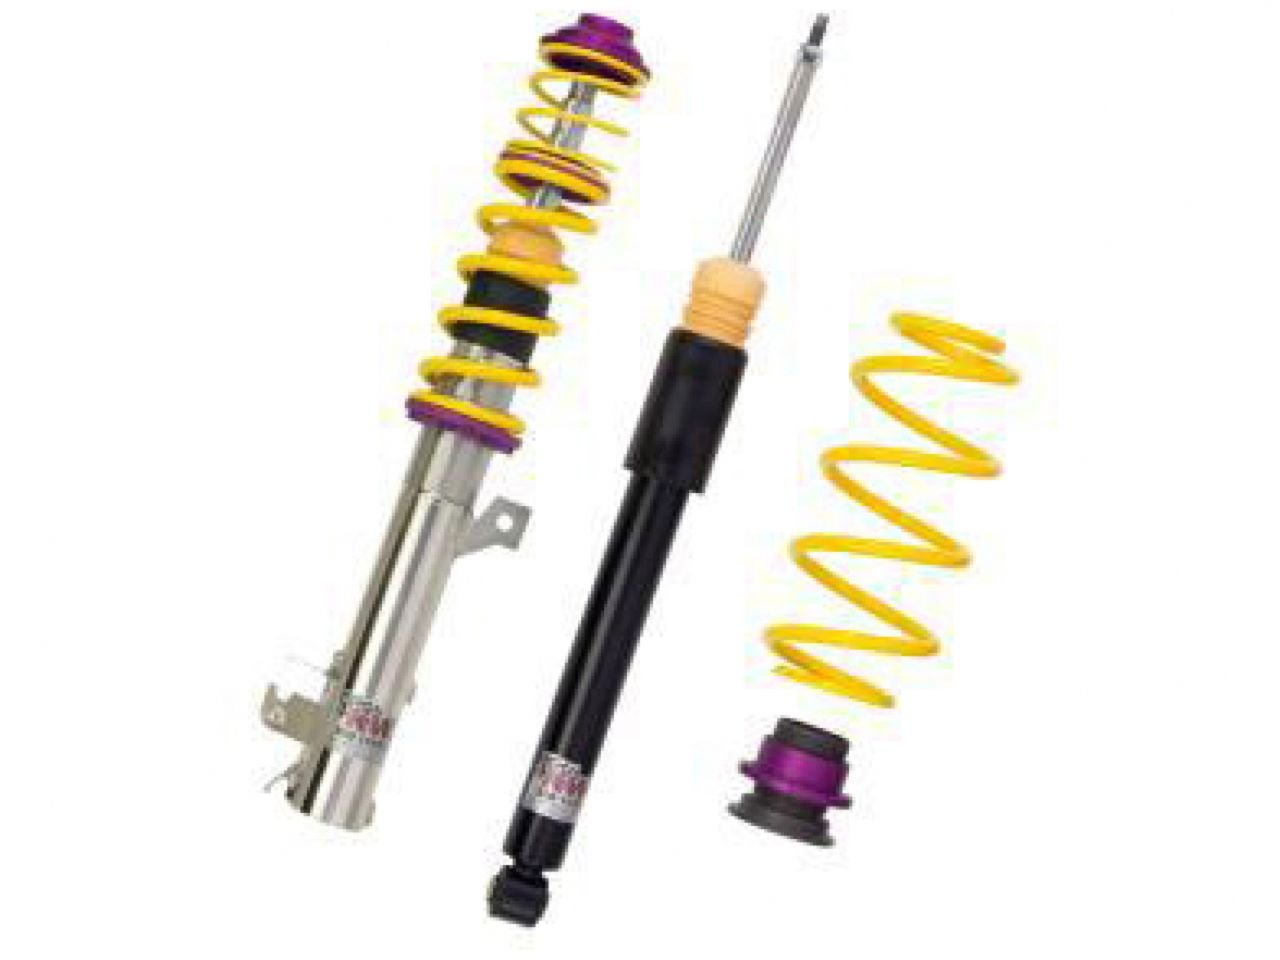 KW 10280081 Variant 1 Coilover